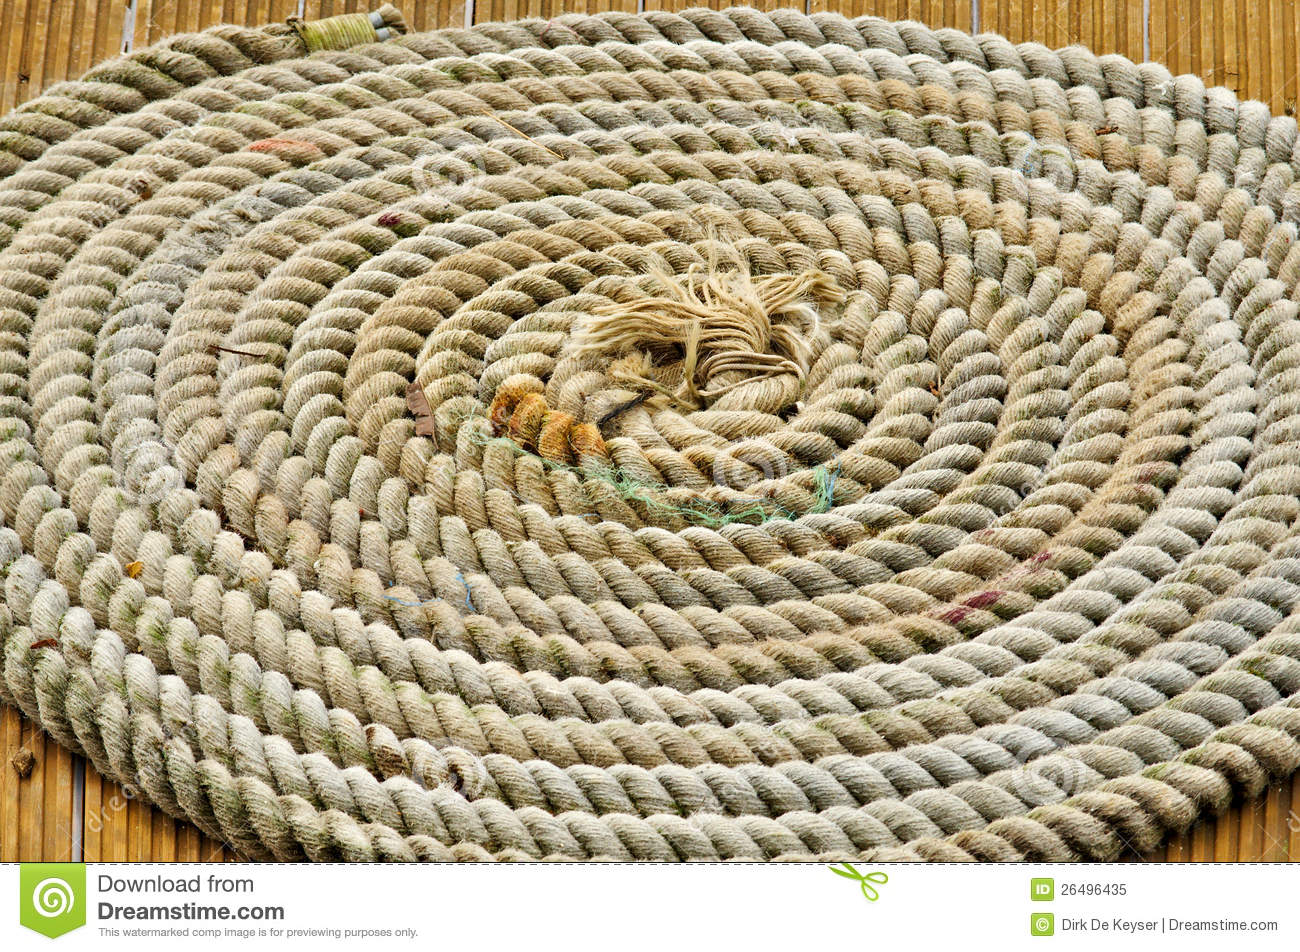 A rope in circles on a boat